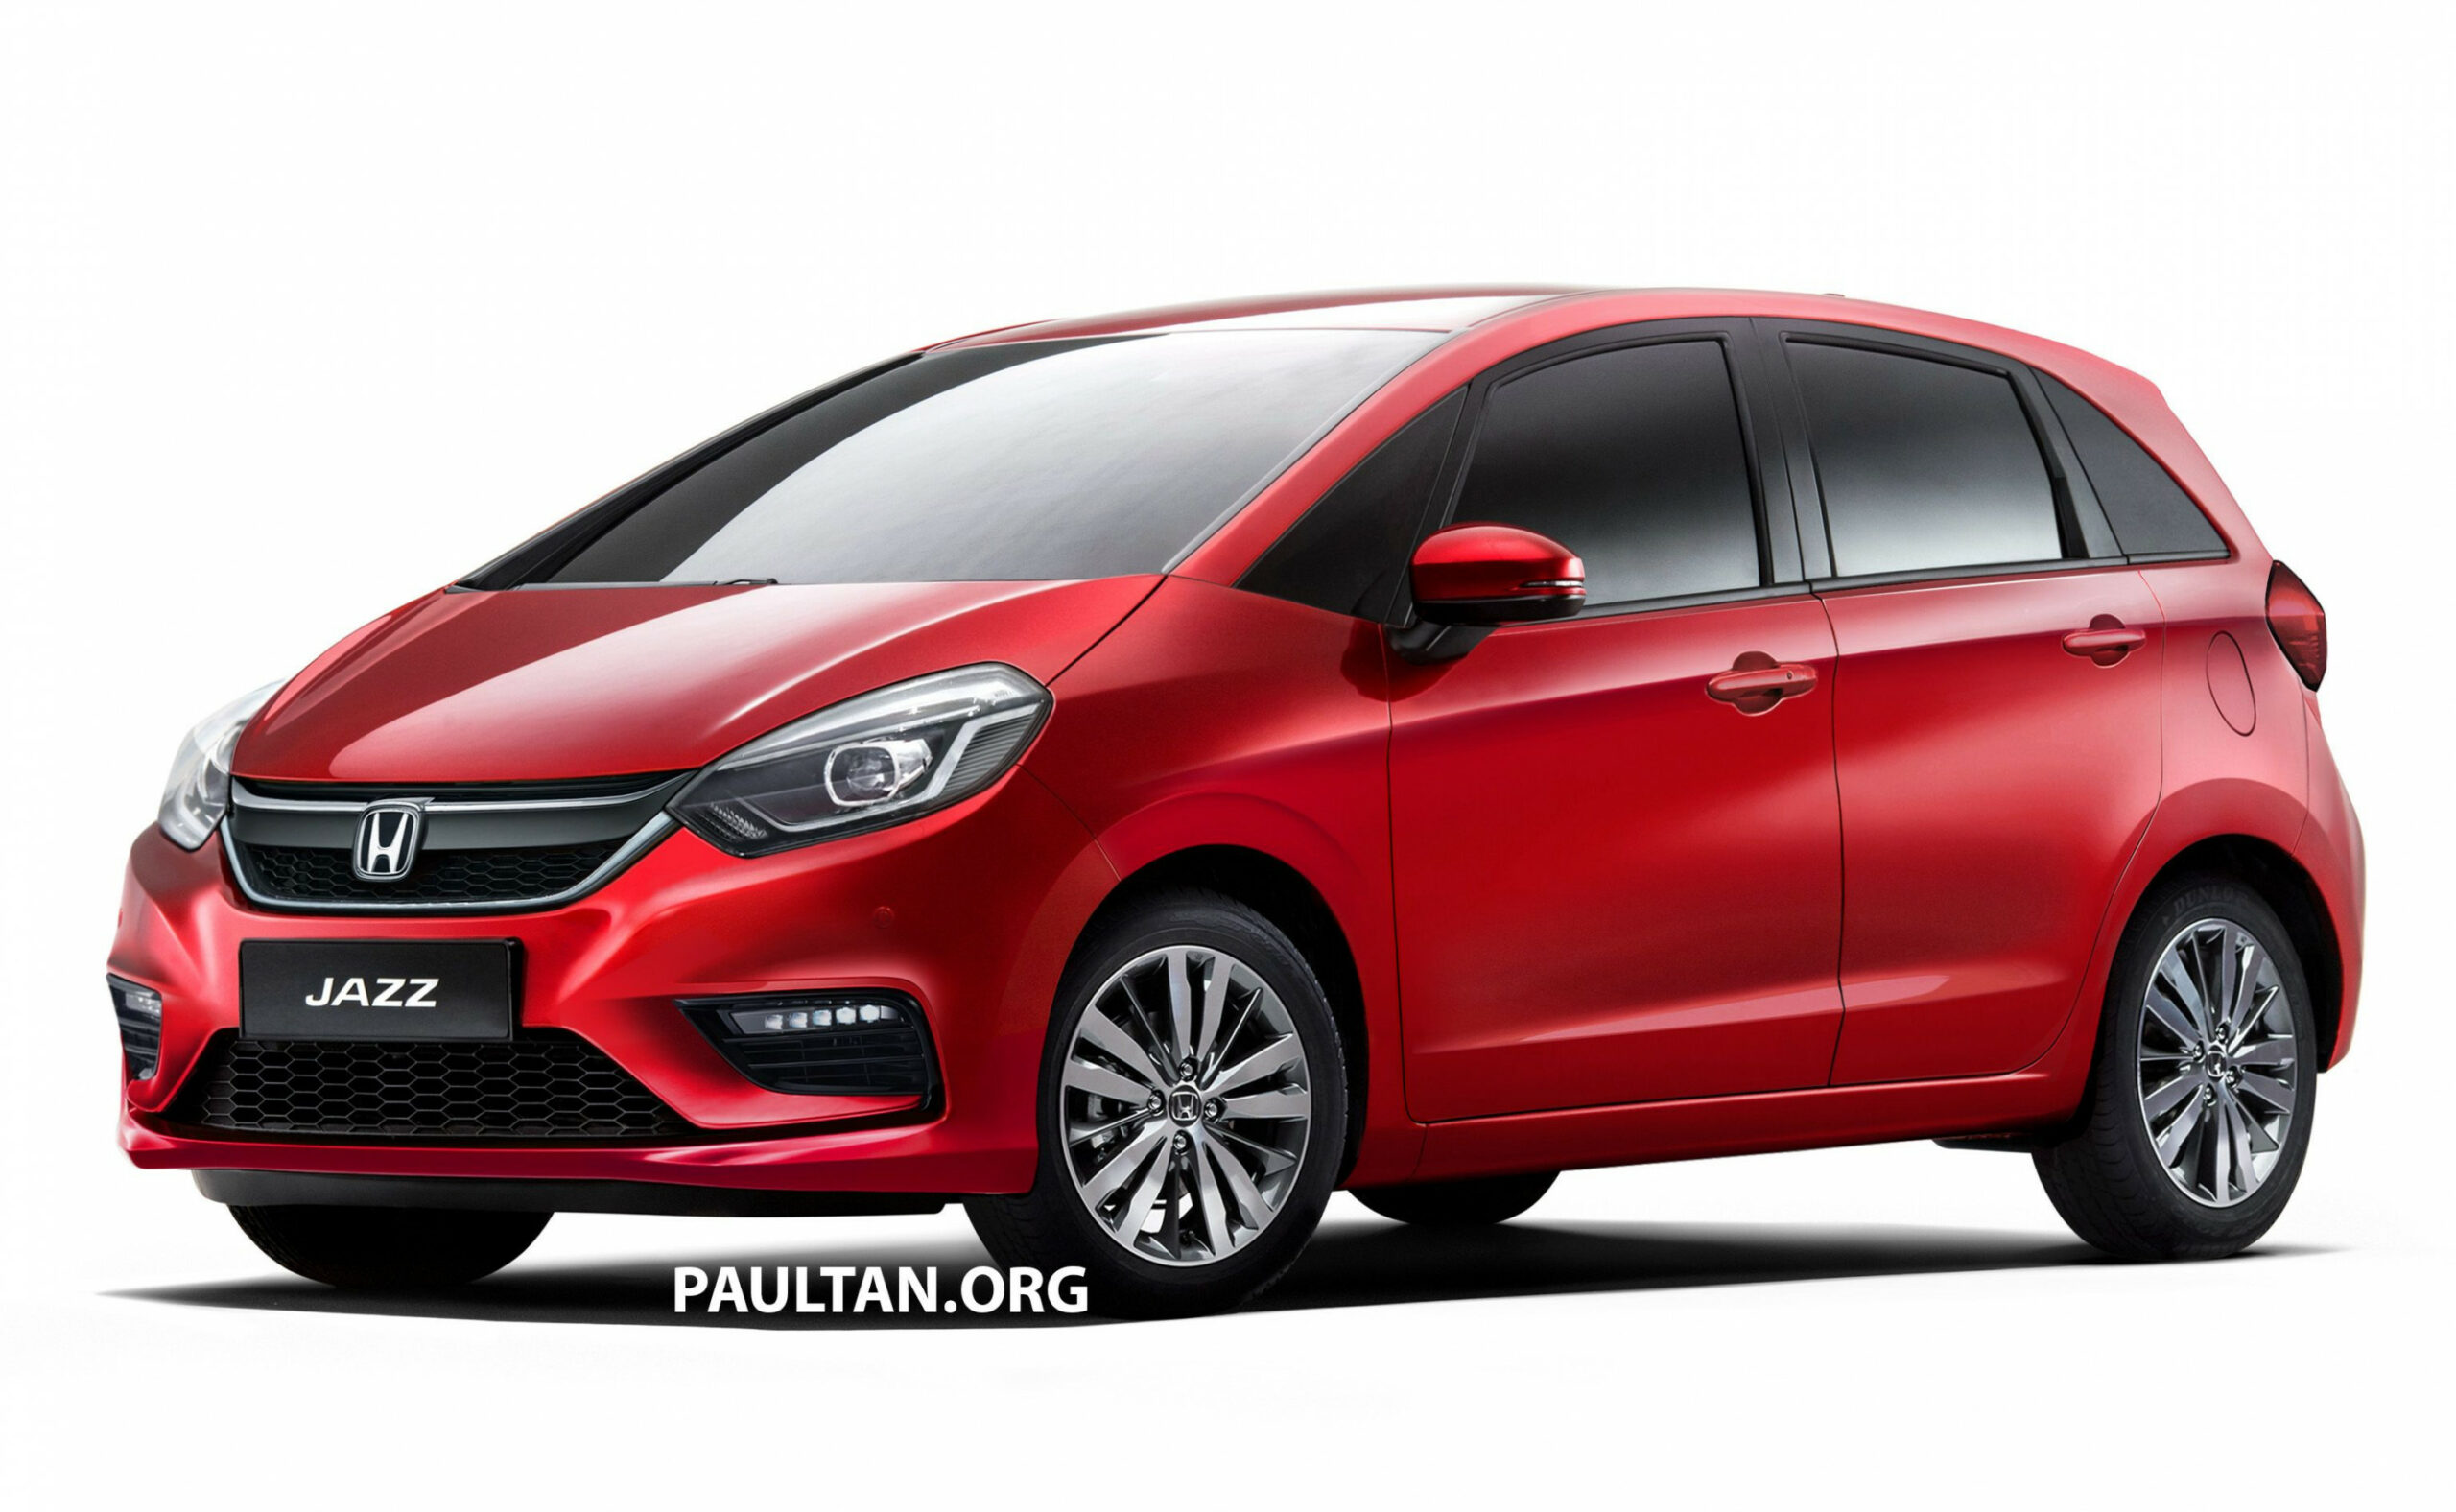 honda jazz 6 price malaysia Review, specs and Release date 6 ..